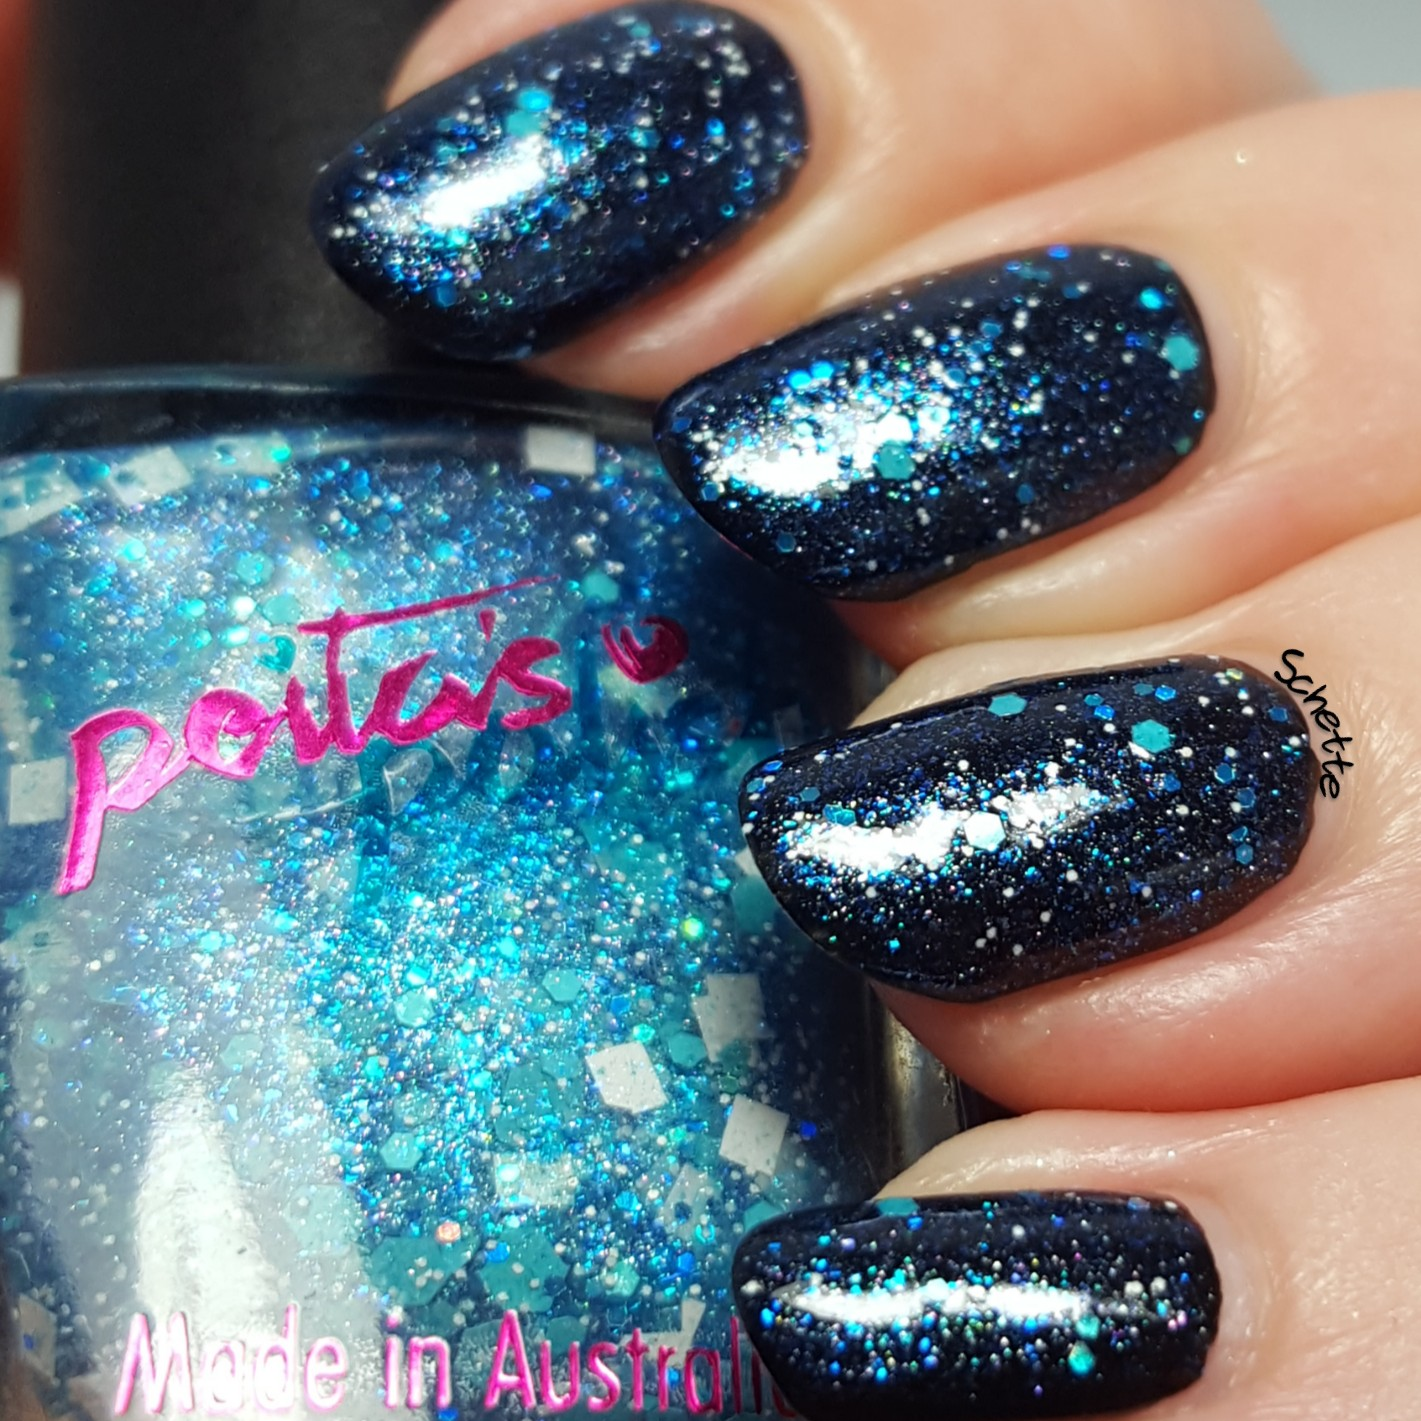 Peita's Polish - Smurf up